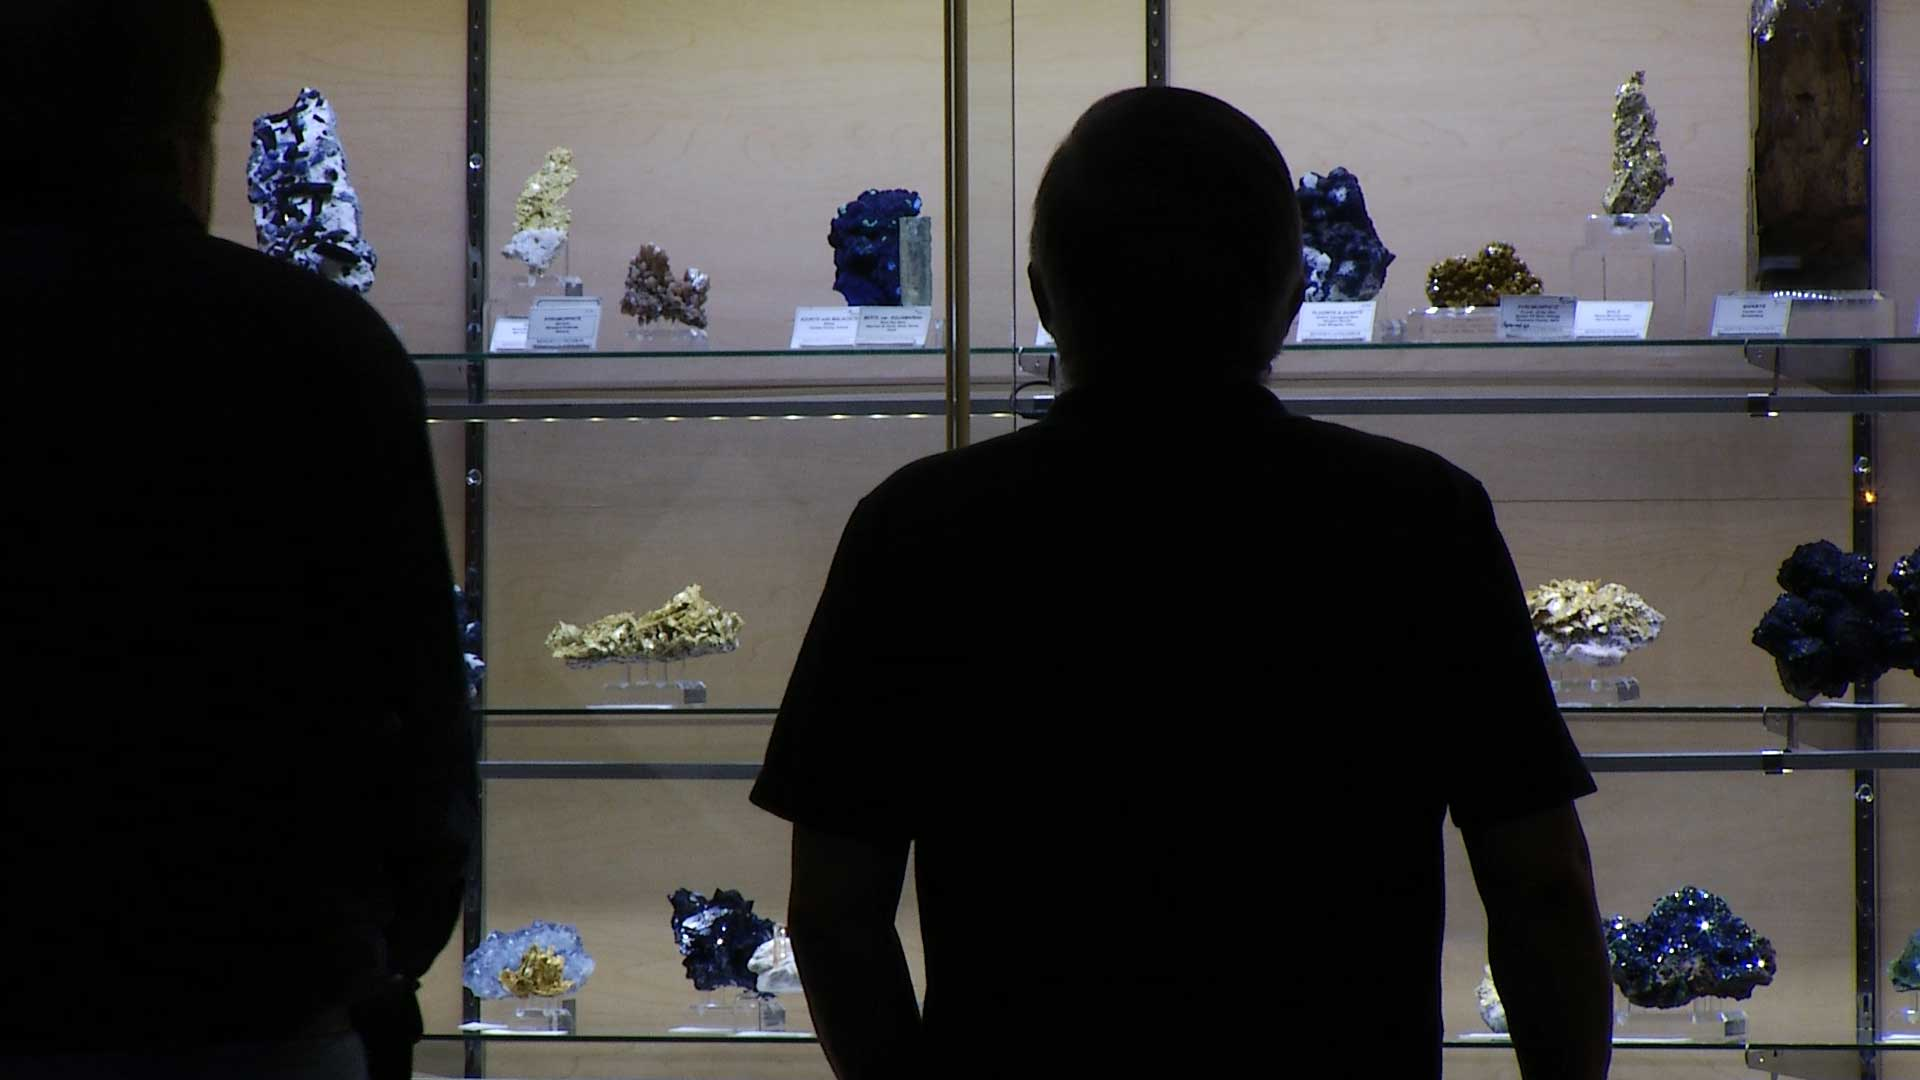 Visitors examine displays at the Tucson Gem and Mineral Show, 2015.